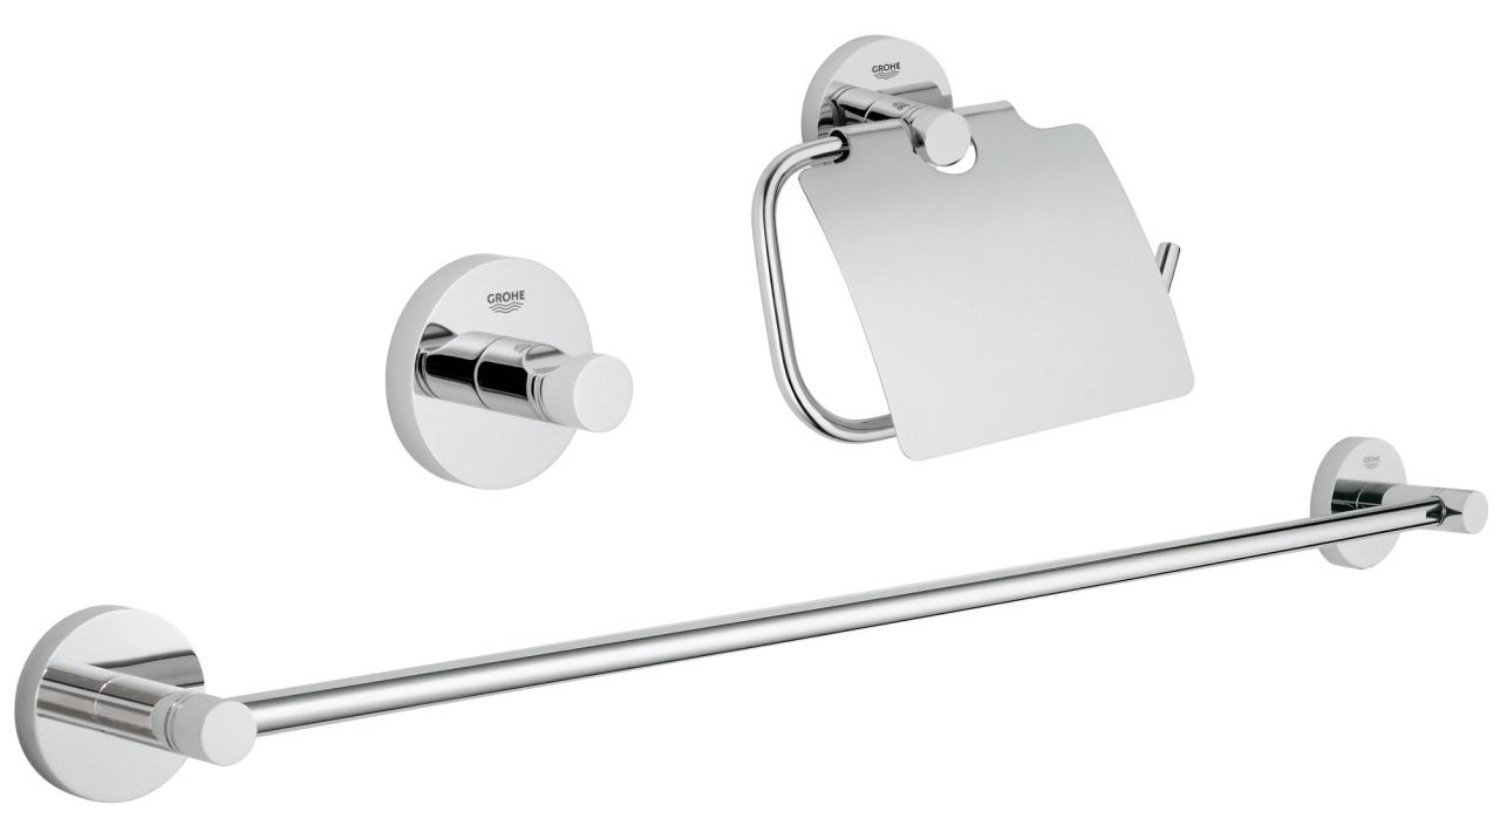 Set accesorii baie 3 in 1 Grohe Essentials-40775001 imagine